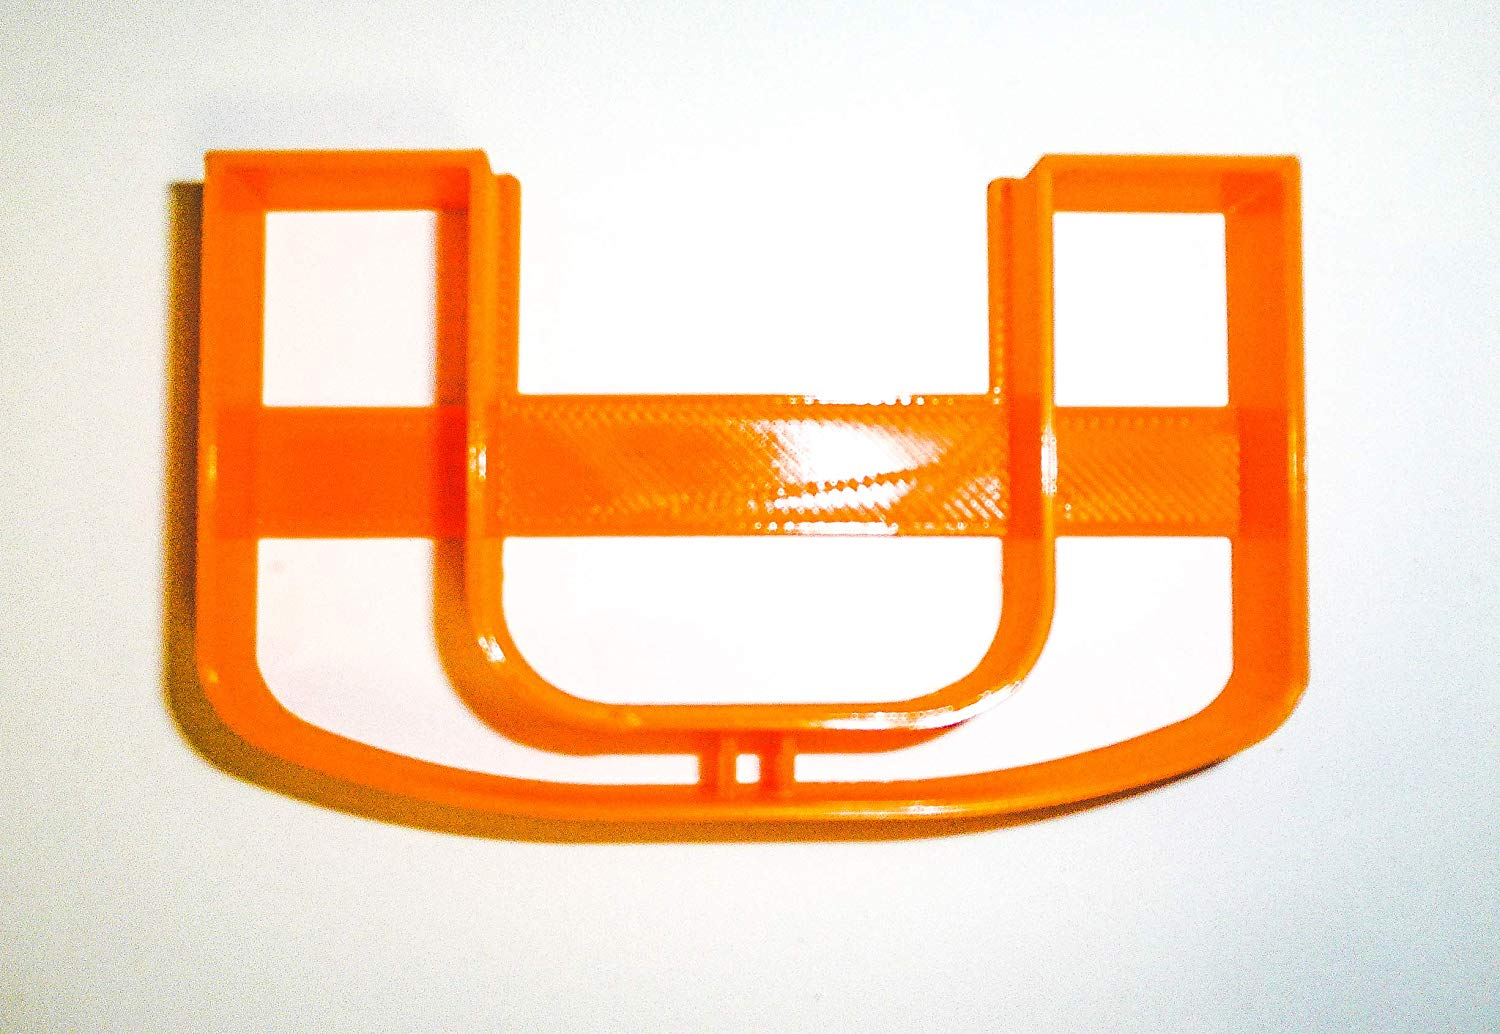 UNIVERSITY OF MIAMI HURRICANES FOOTBALL LOGO NCAA D1 SPECIAL OCCASION  COOKIE CUTTER BAKING TOOL 3D PRINTED MADE IN USA PR926.